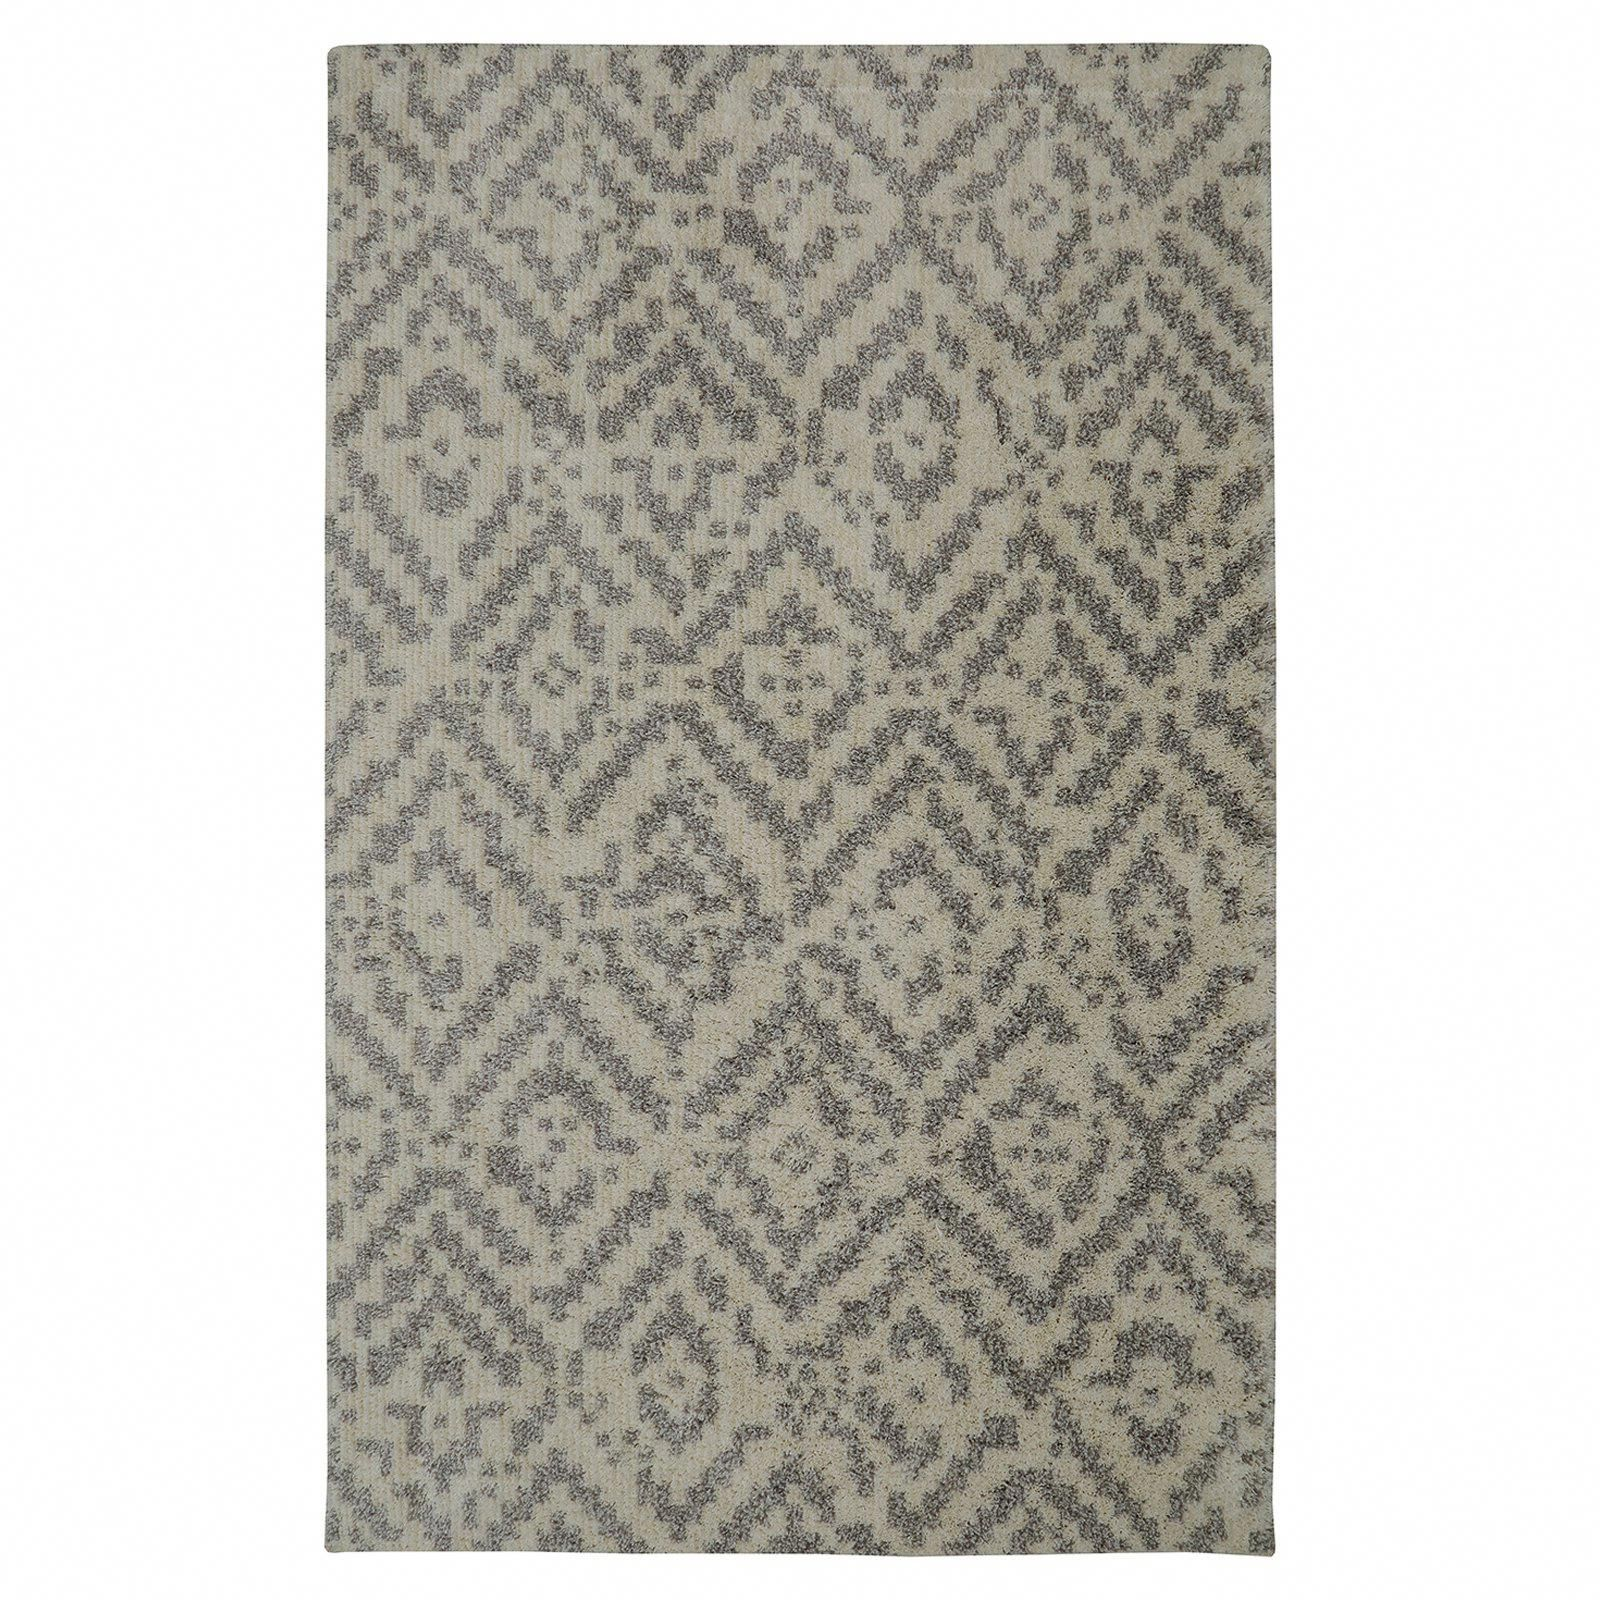 Carpet Runner 90 Degree Turn Carpetrunnerscommercial Refferal 4633847291 Mohawk Home Area Rugs Beige Area Rugs